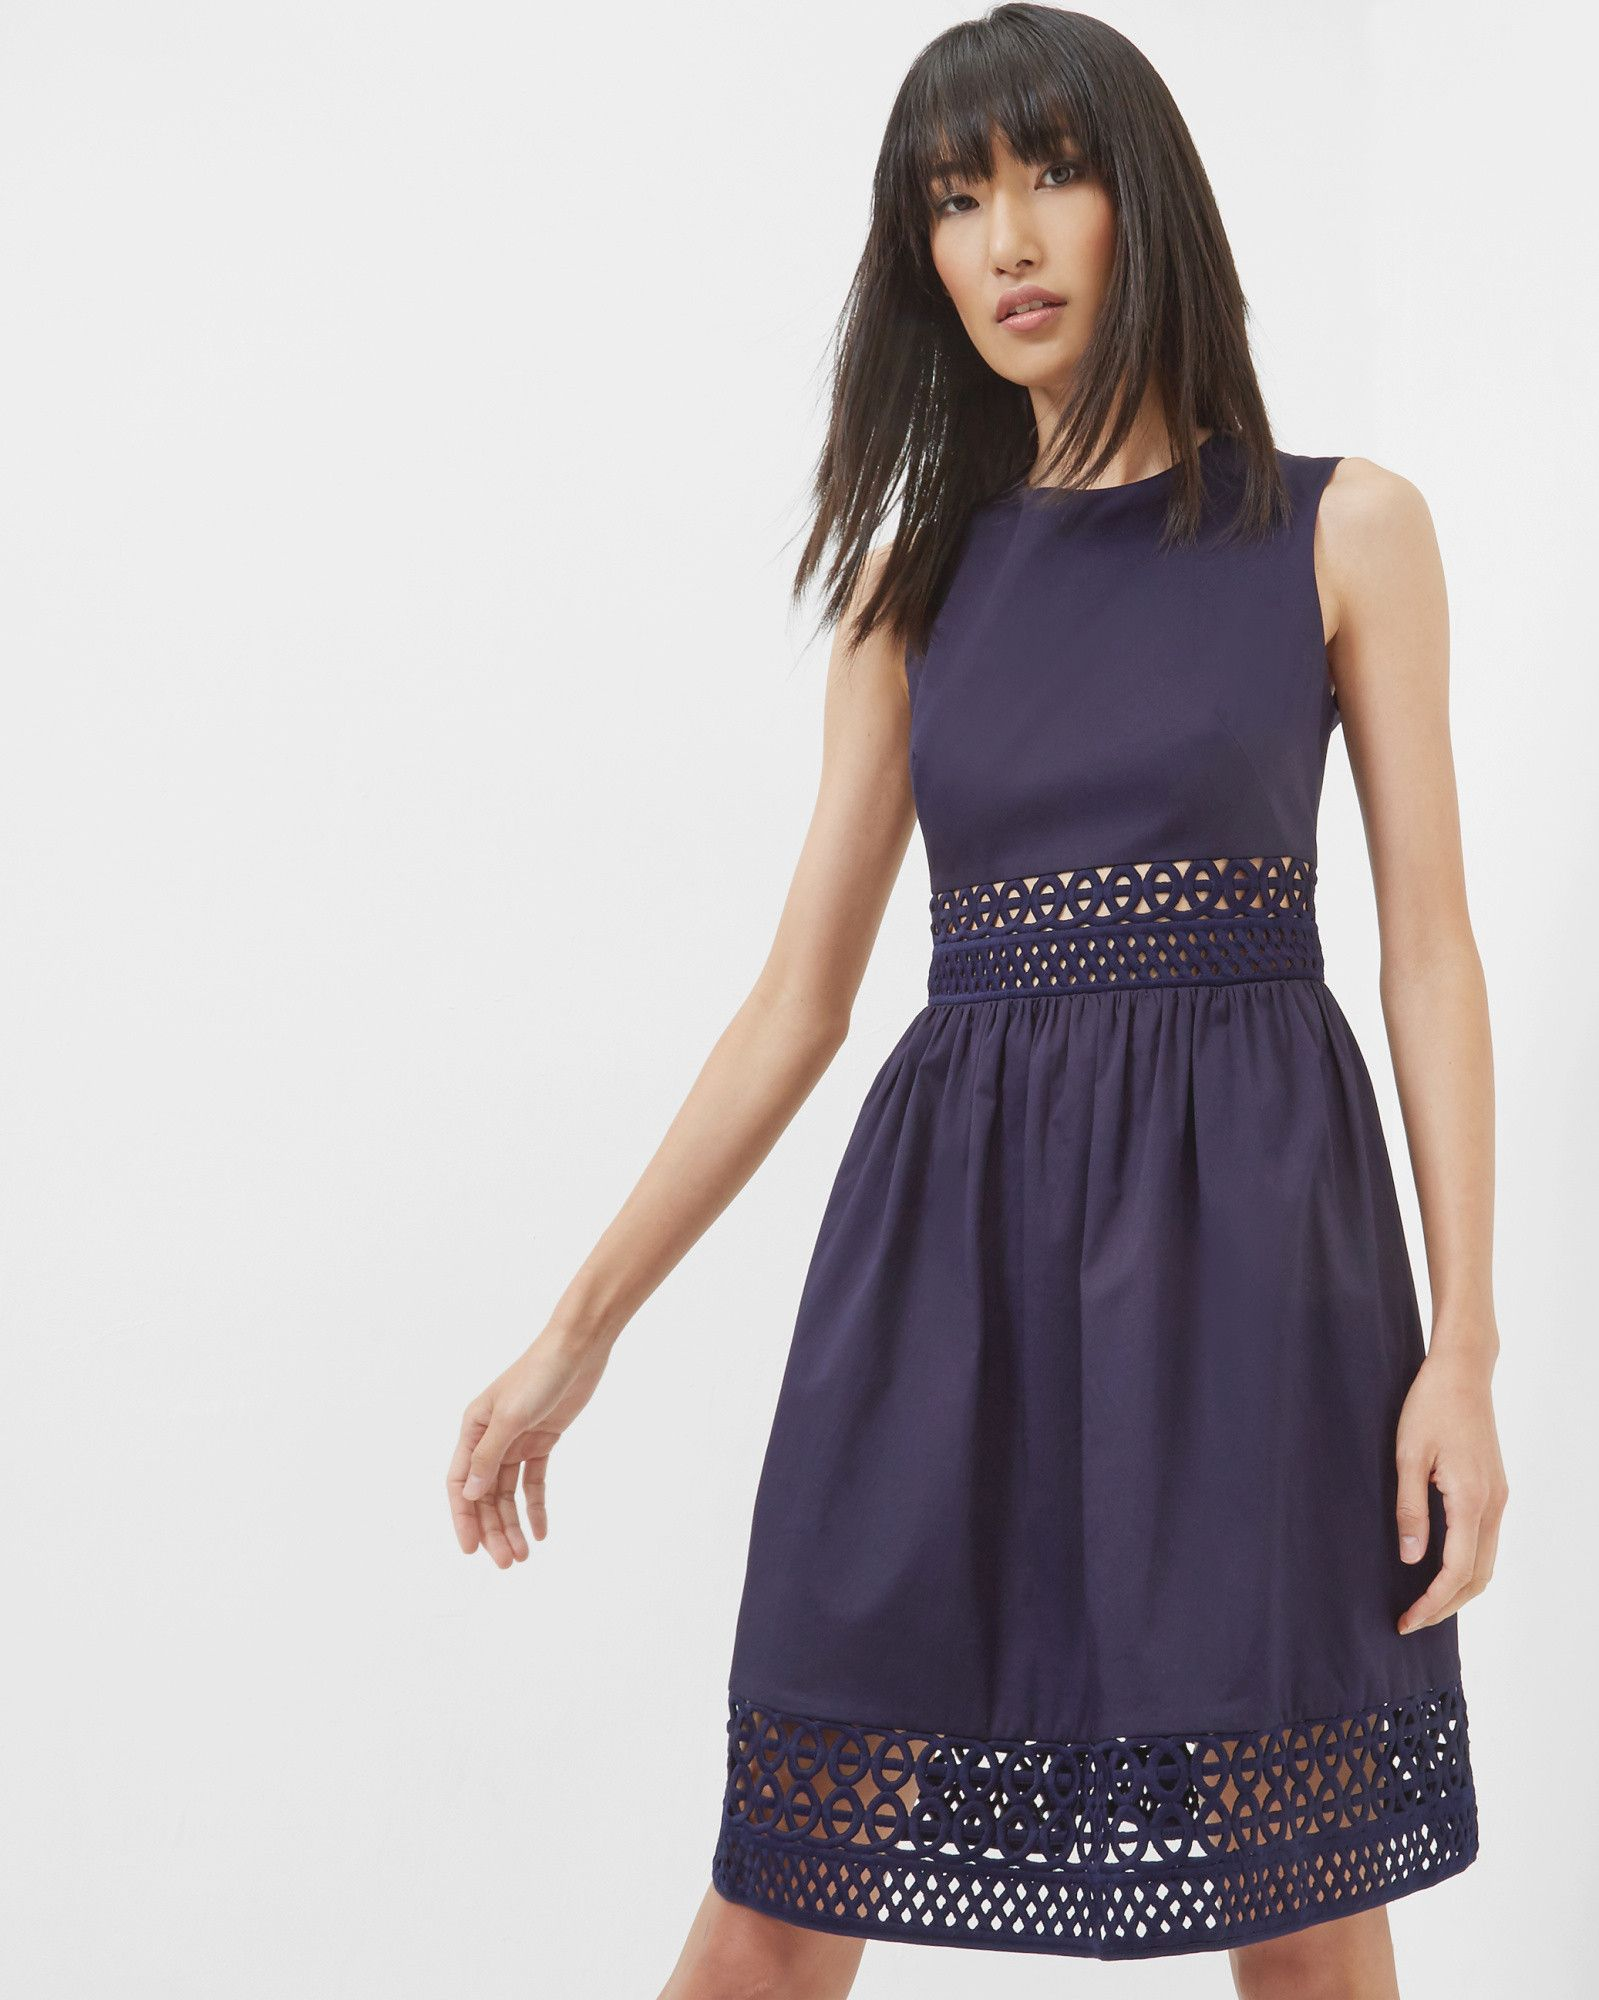 c59f1ae44f89 DAYZEY A-line lace panel dress  TedToToe Outlet Clothing